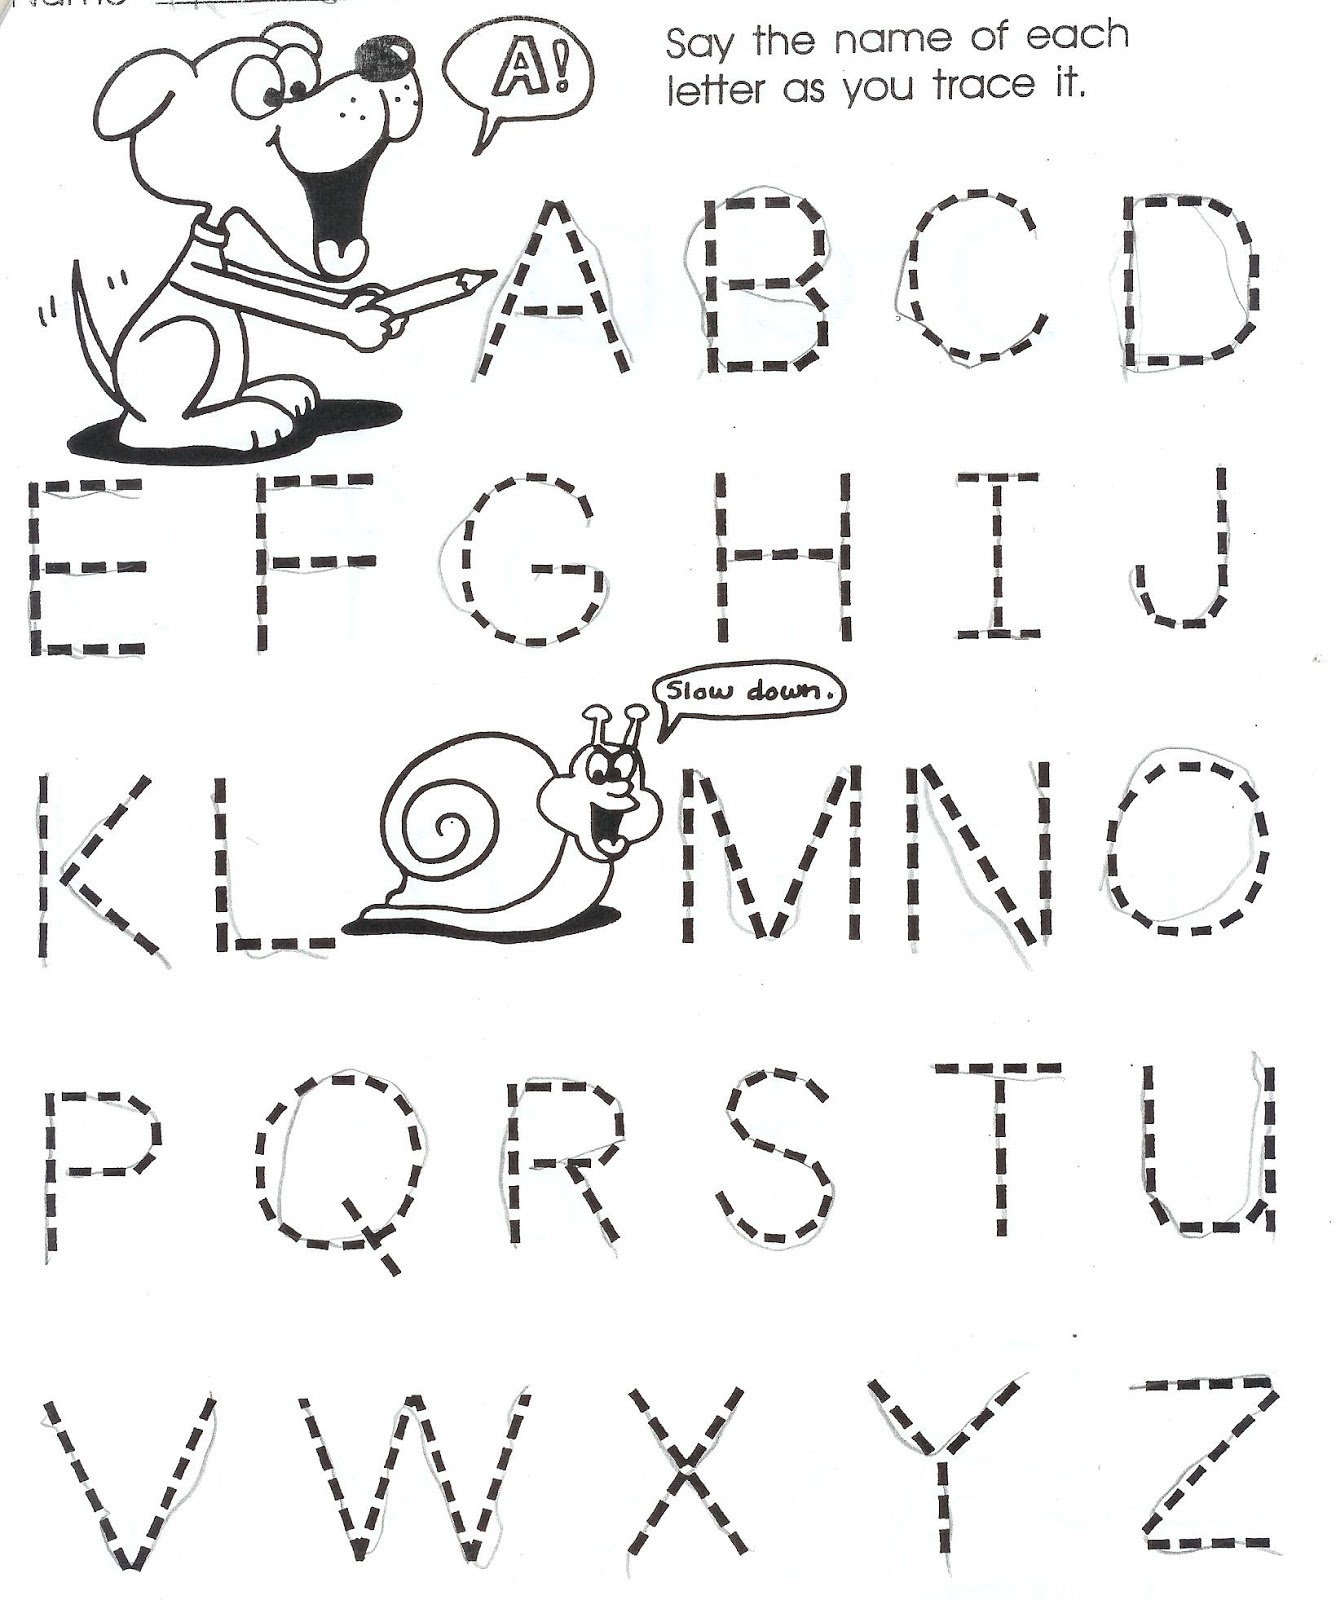 printable activity books for 3 year olds 2